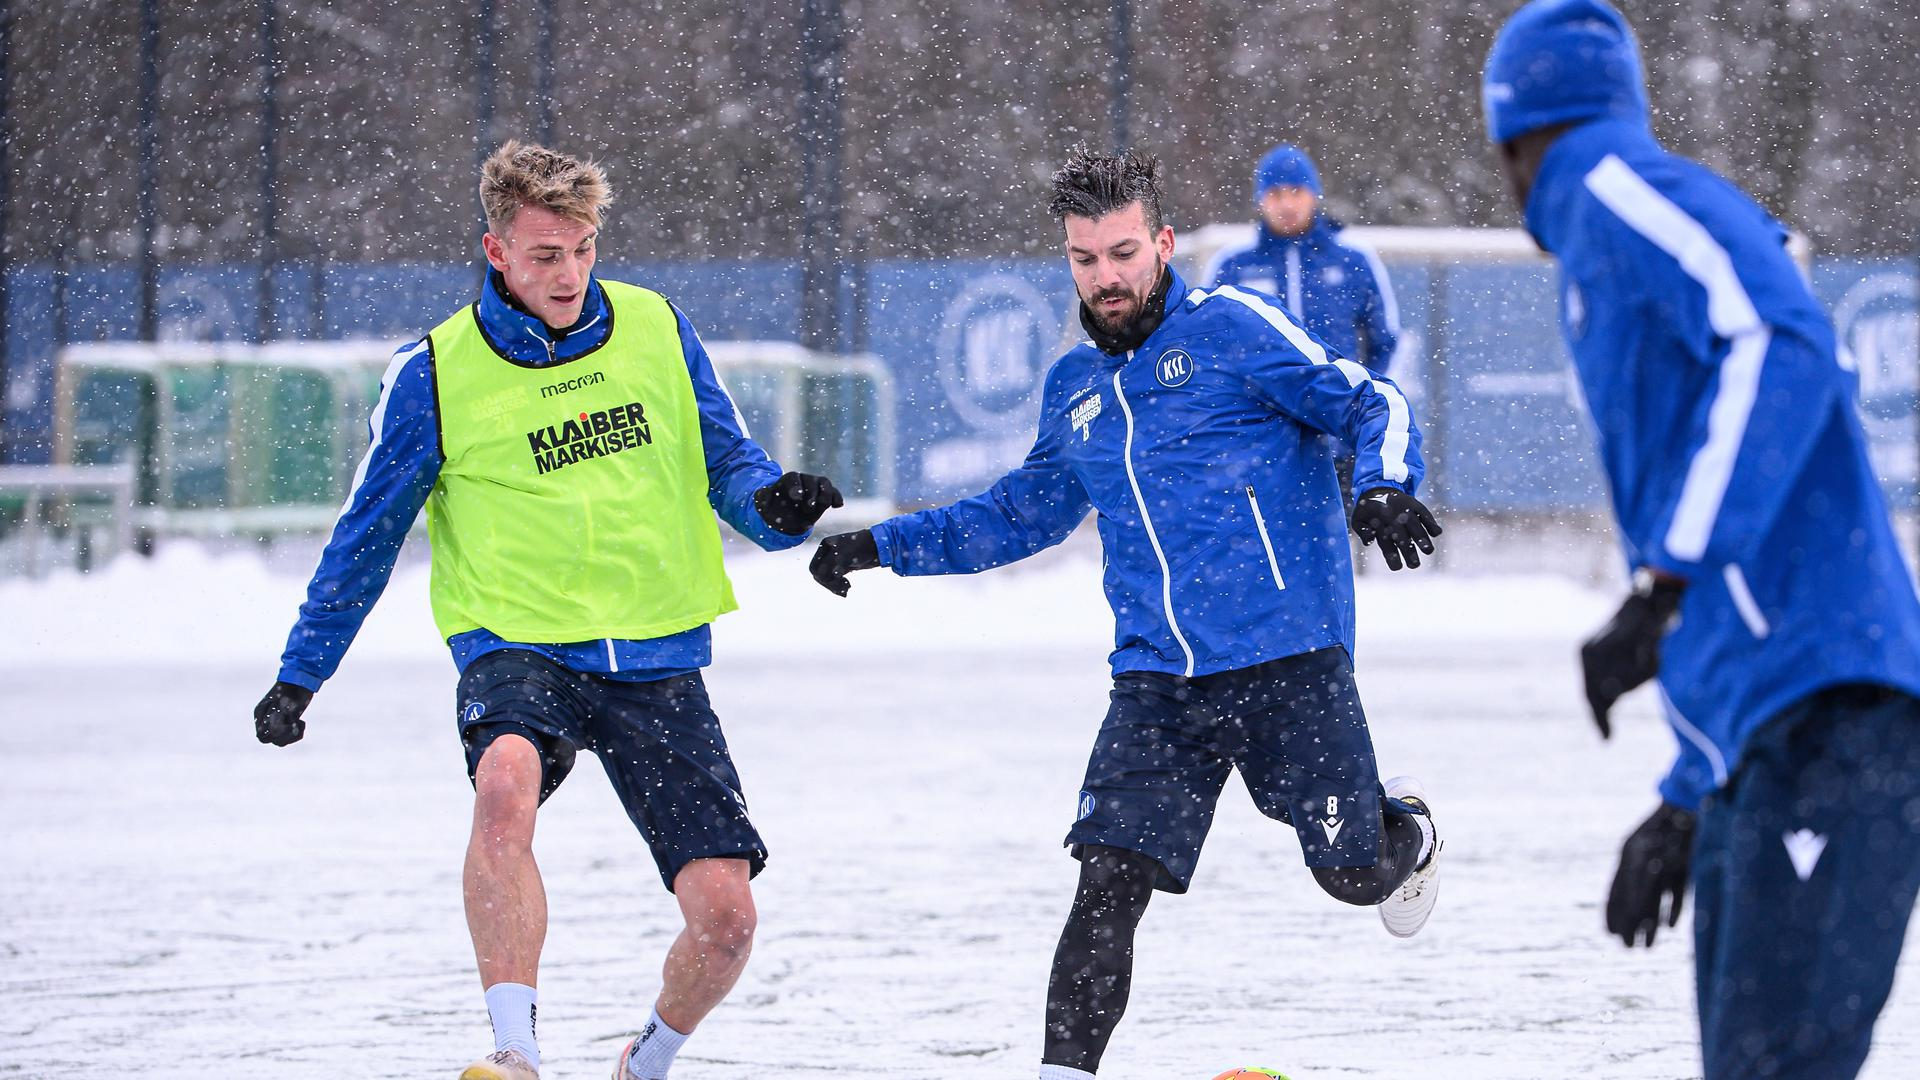 Zweikampf, Duell  im Schnee zwischen Marco Thiede (KSC)l. und Jerome Gondorf (KSC).  GES/ Fussball/ 2. Bundesliga: Karlsruher SC - Training,  10.02.2021  Football/Soccer: 2. Bundesliga:  KSC Trainingsession, Karlsruhe, February 09, 2021